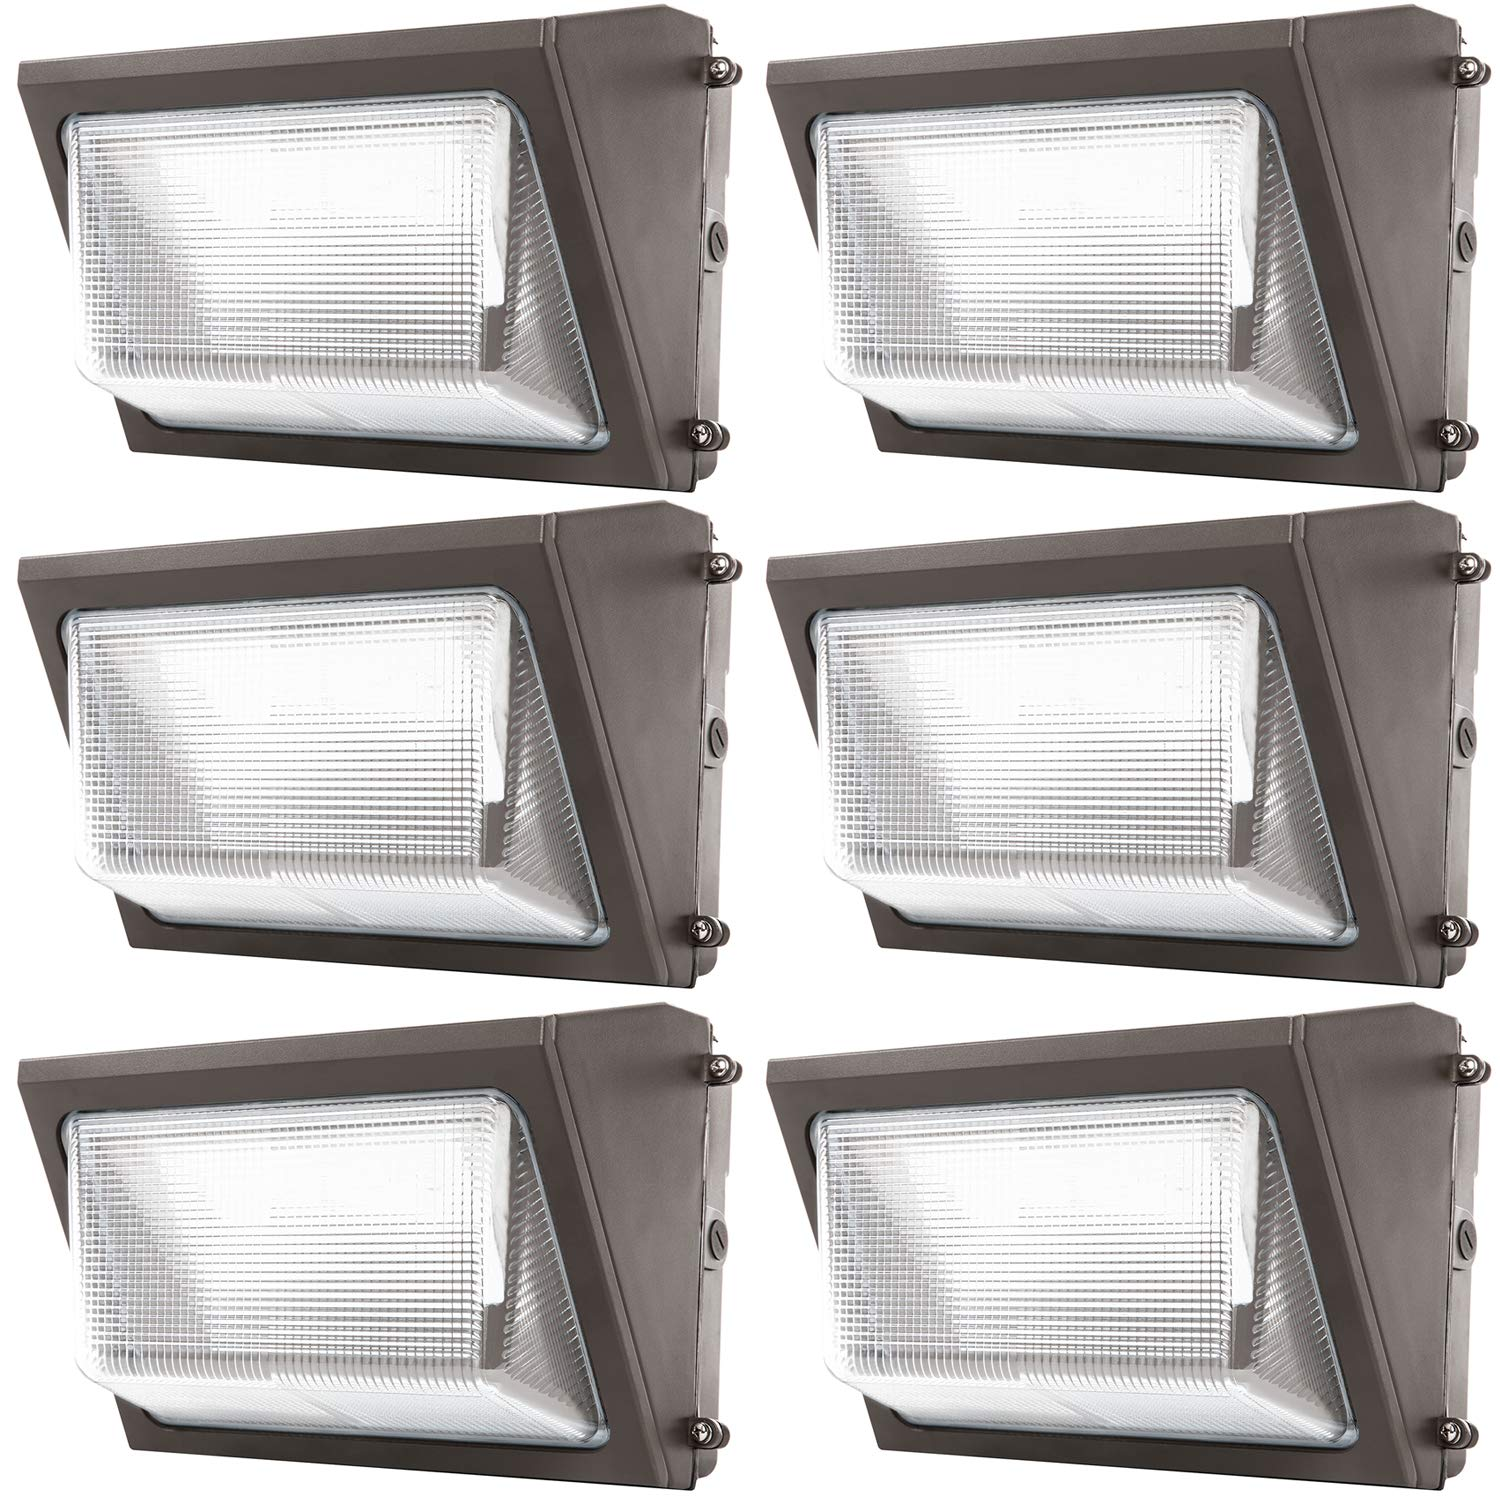 Sunco Lighting 6 Pack 80W LED Wall Pack, Daylight 5000K, 7600 LM, HID replacement, IP65, 120-277V, Bright Consistent Commercial Outdoor Security Lighting - ETL, DLC Listed